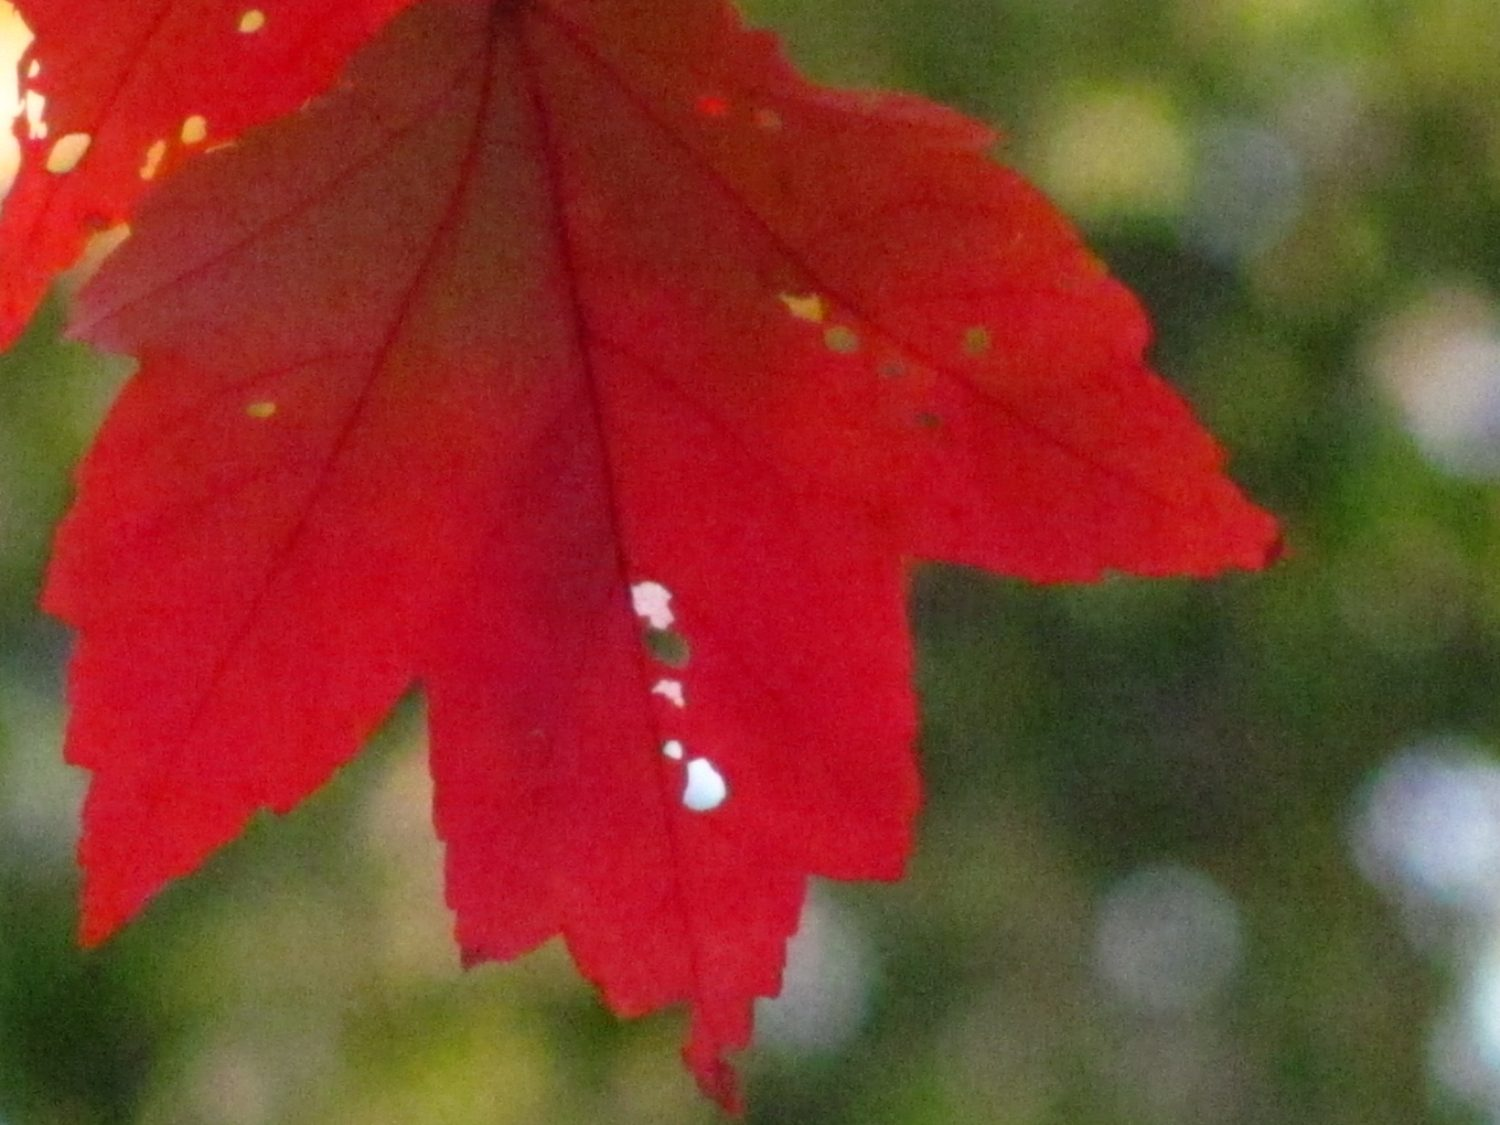 Red MapleTree (Acer rubrum) leaf. Photo by Donna L. Long.